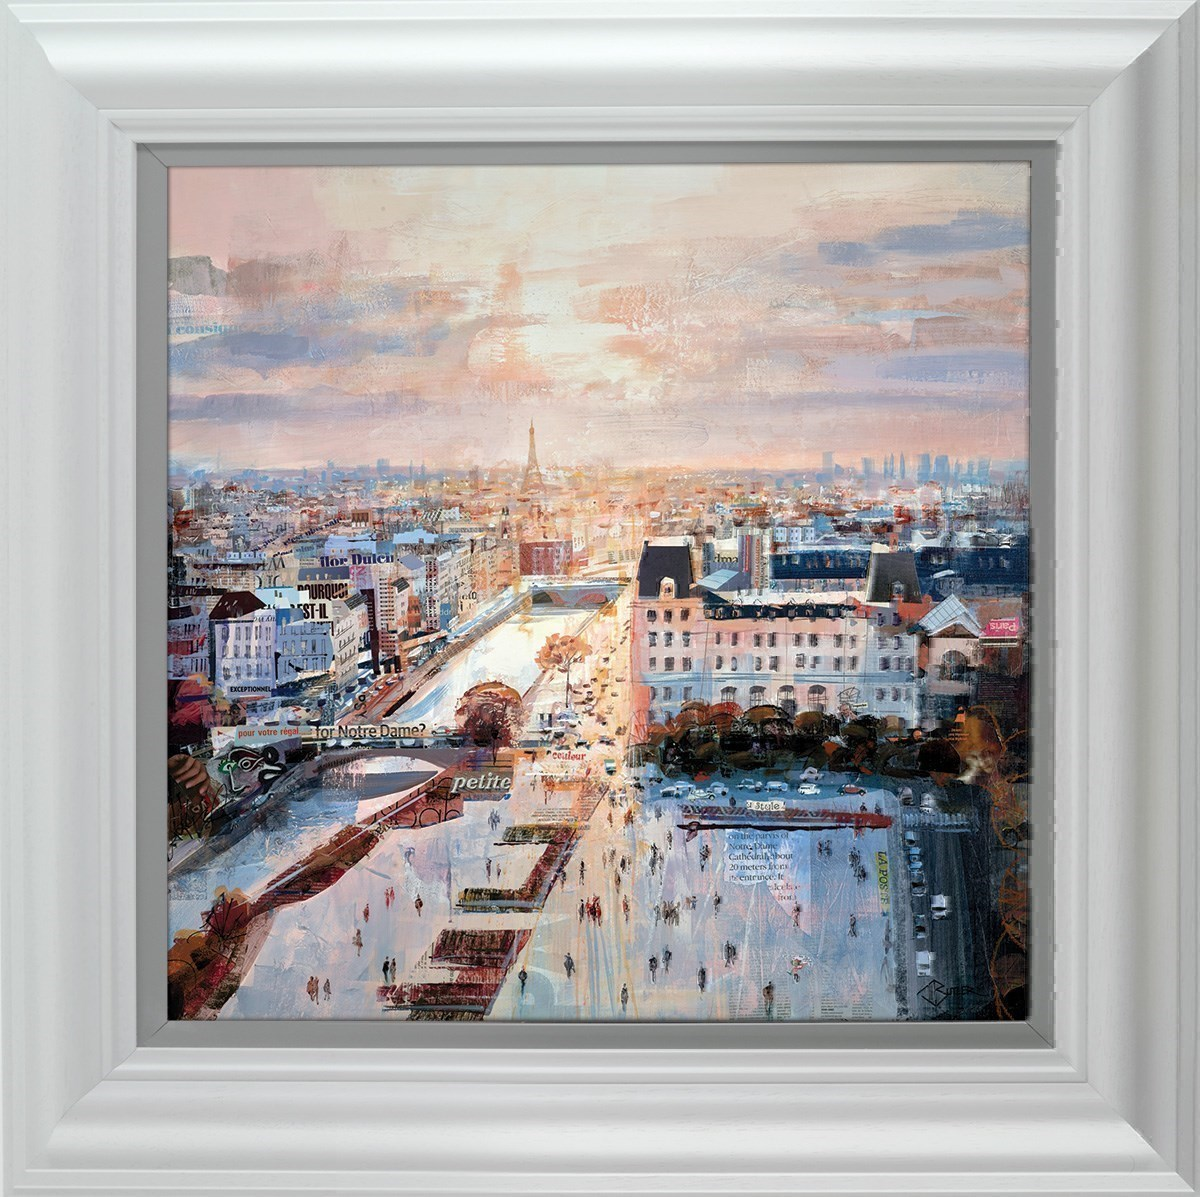 Rooftop Reverie by Tom Butler - Limited Edition on Paper sized 16x16 inches. Available from Whitewall Galleries